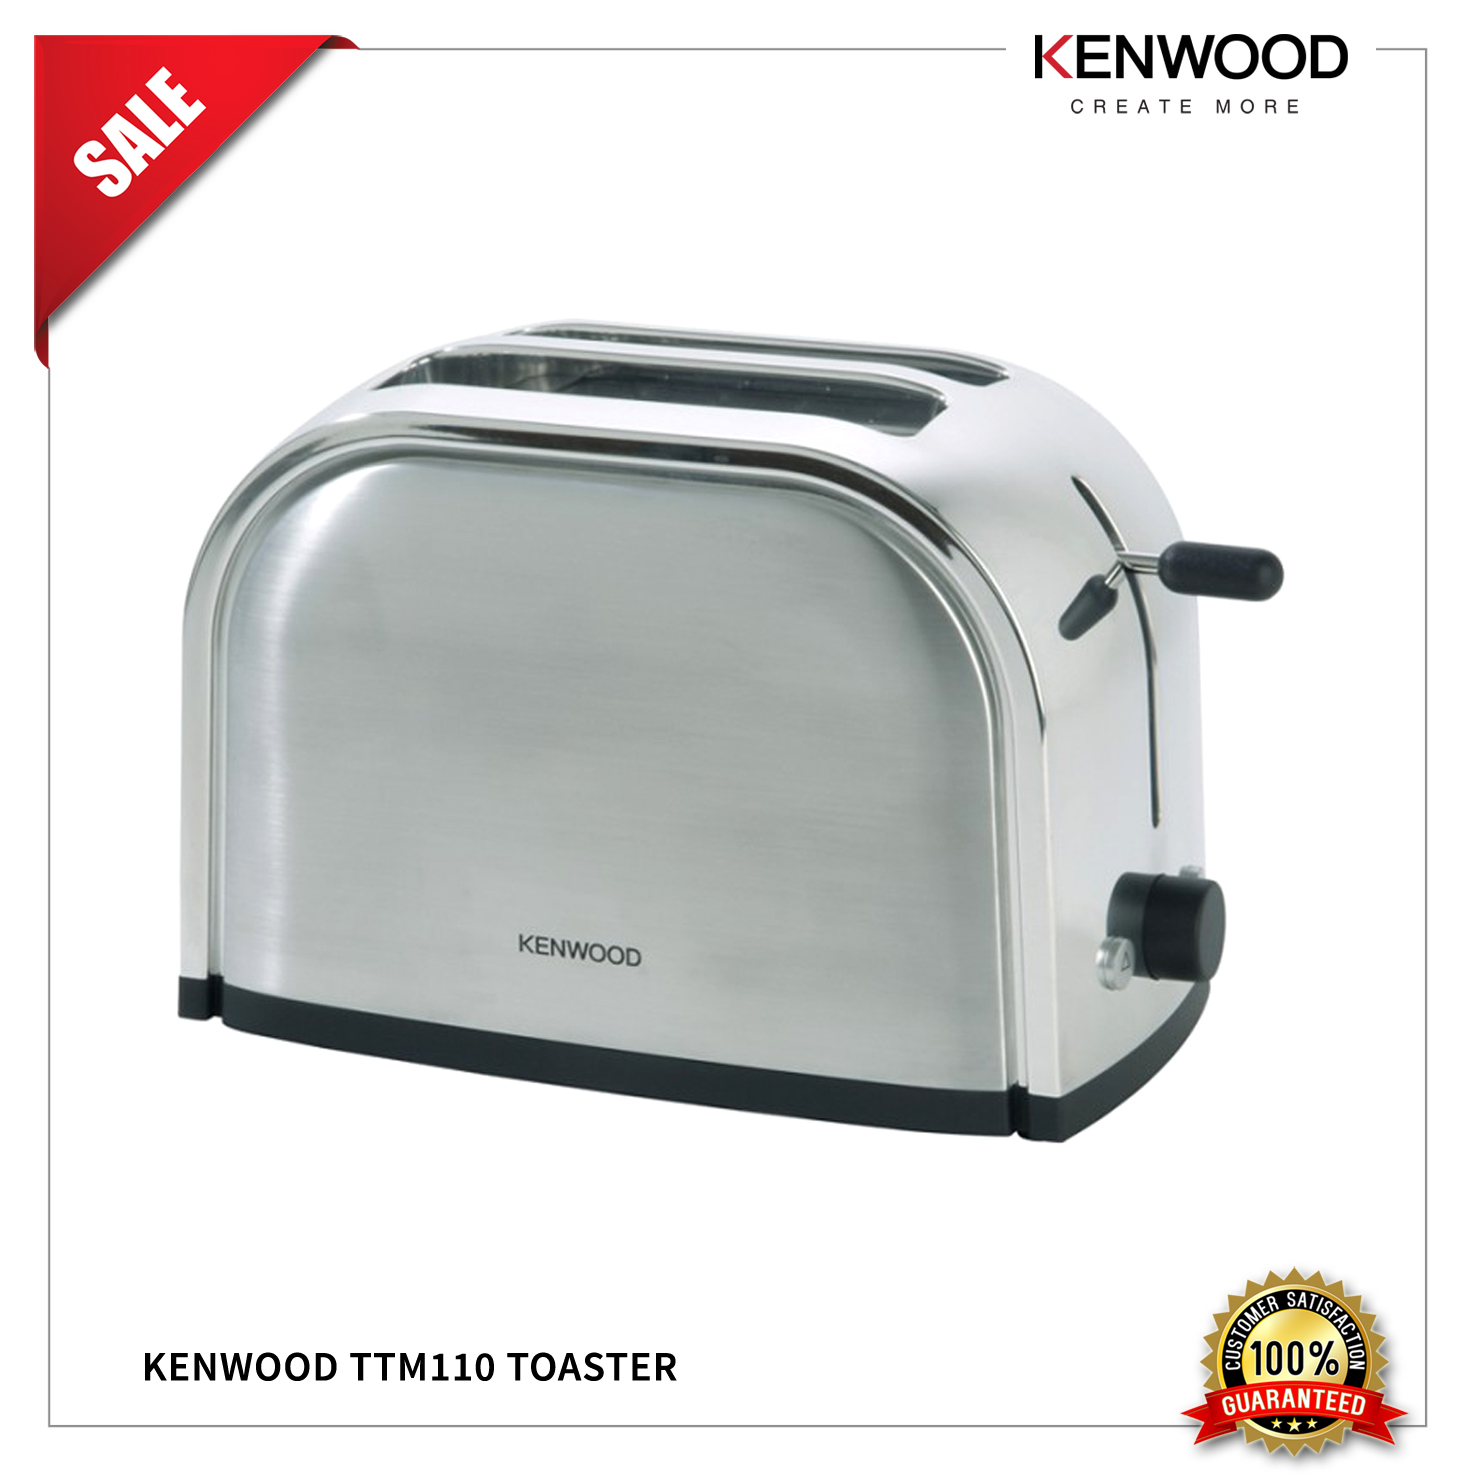 KENWOOD_TTM110 – REVISI 1